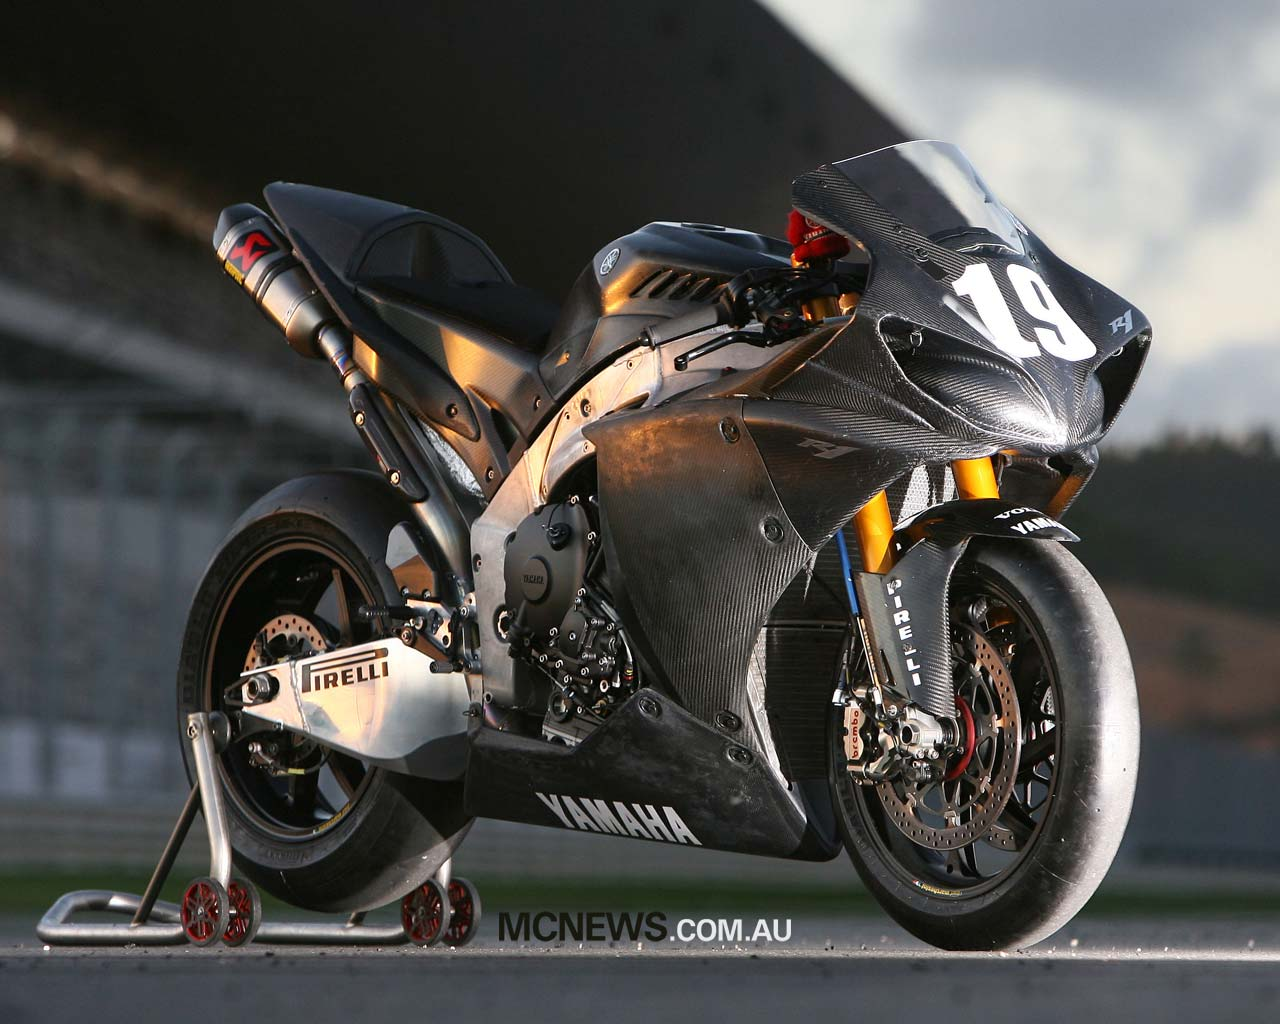 2013 Yamaha R1 Black | Wallpaper For Desktop